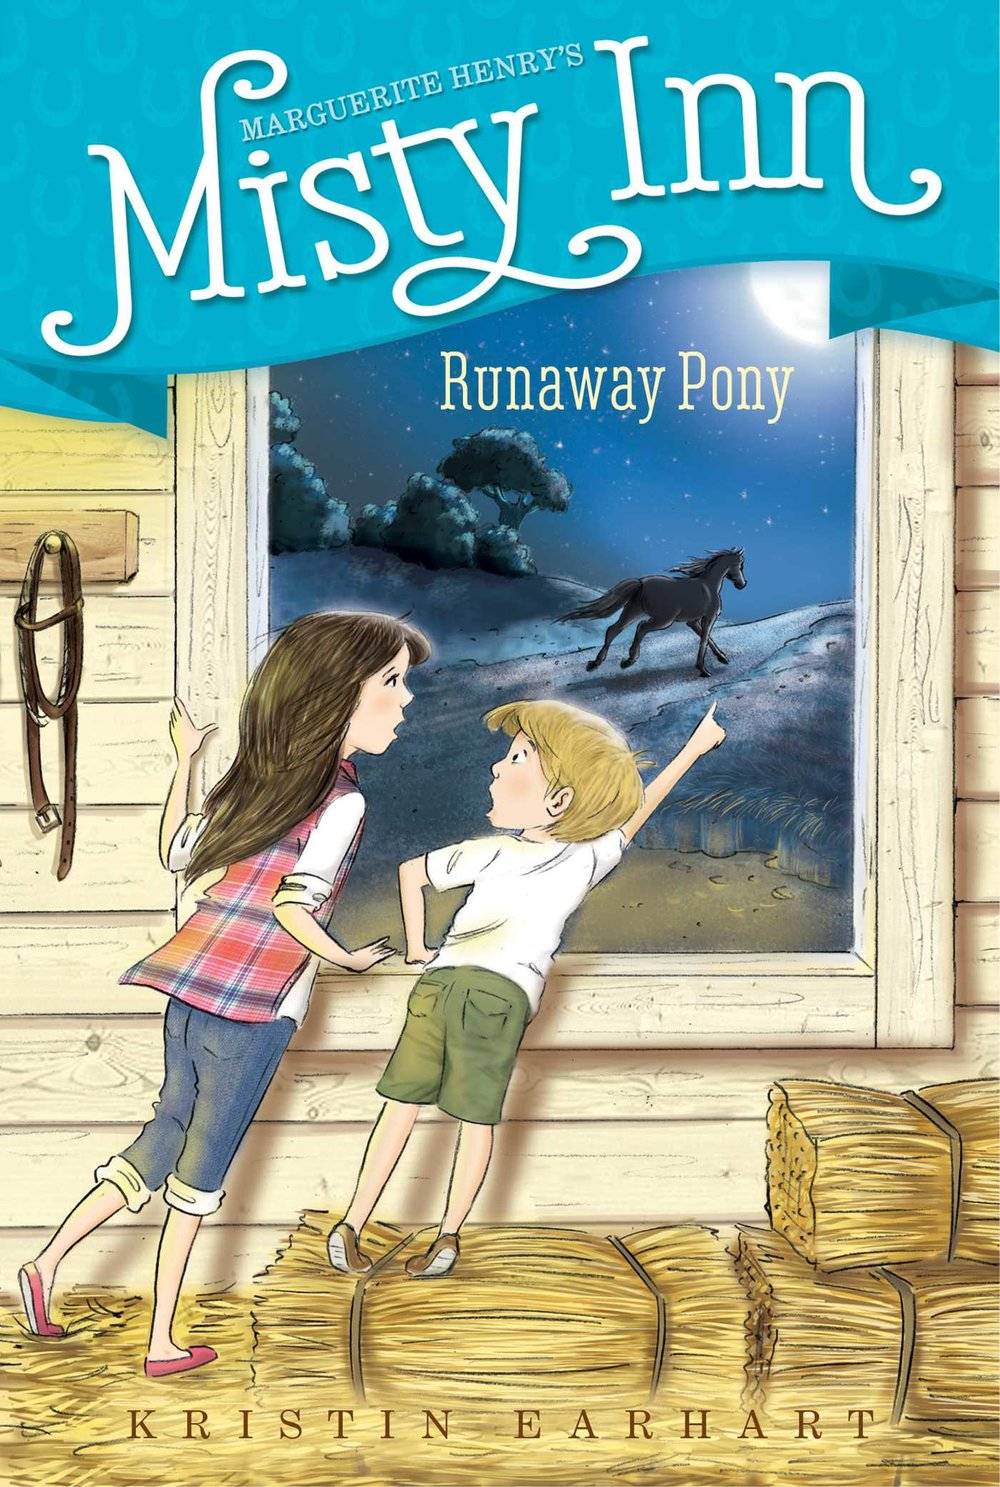 Runaway Pony - A lost pony is cause for a nighttime adventure on Chincoteague Island in this third book of a chapter book series inspired by Marguerite Henry's Misty of Chincoteague.Full Moon Fancy, Fancy for short, is a pony with a knack for getting loose. First she just tramples a herb garden, then she knocks over a wall of a chicken coop, so the hens end up all over the yard and down on the beach. When she gets out one too many times, Willa and Ben are worried she's lost. They set out to track her down—in the moonlight! Will they find the runaway pony, or is Fancy lost for good?